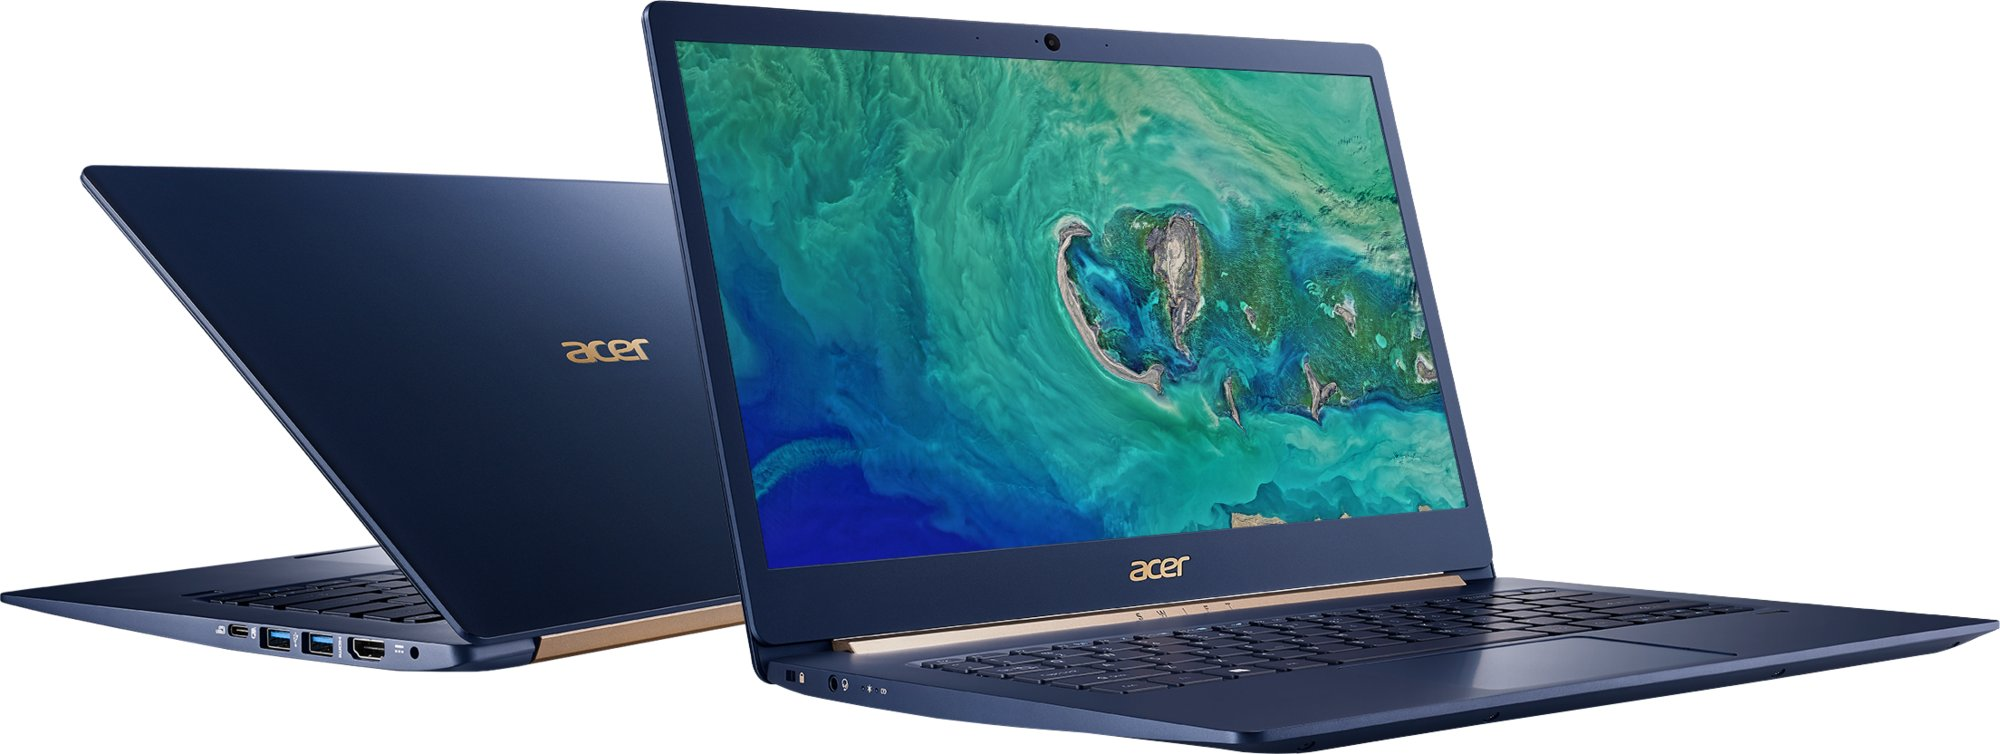 Acer Swift 5 SF514-53T-770X